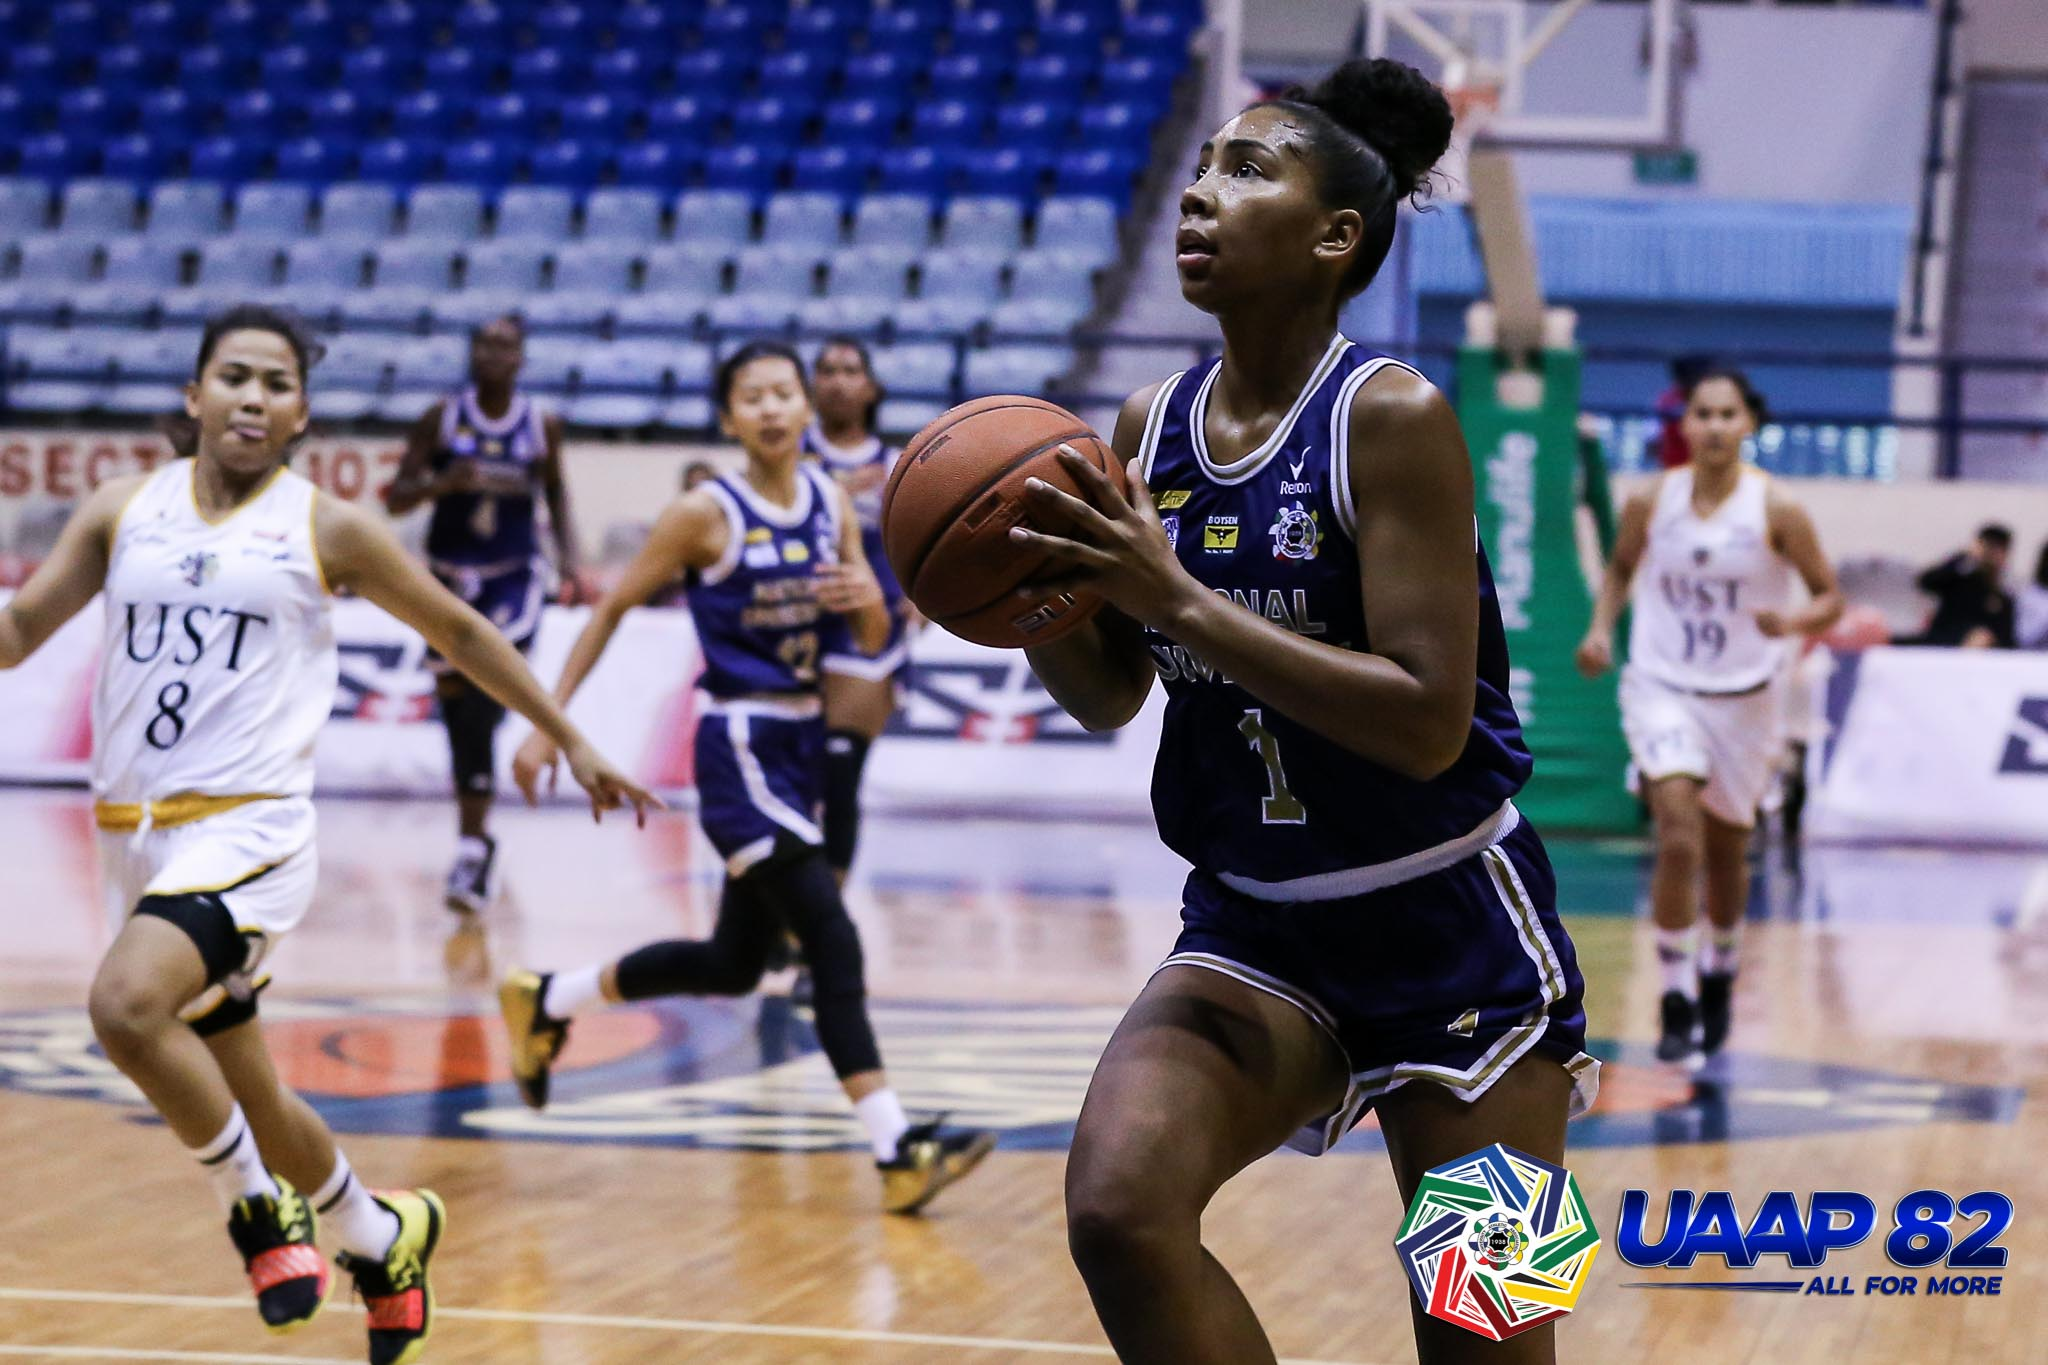 Tiebreaker Times Hayes steps up as NU Lady Bulldogs escape UST for win no. 91 Basketball News NU UAAP UST  UST Women's Basketball UAAP Season 82 Women's Basketball UAAP Season 82 Shen Callangan Rhena Itesi Patrick Aquino NU Women's Basketball Kelli Hayes Jack Animam Haydee Ong abi portillo